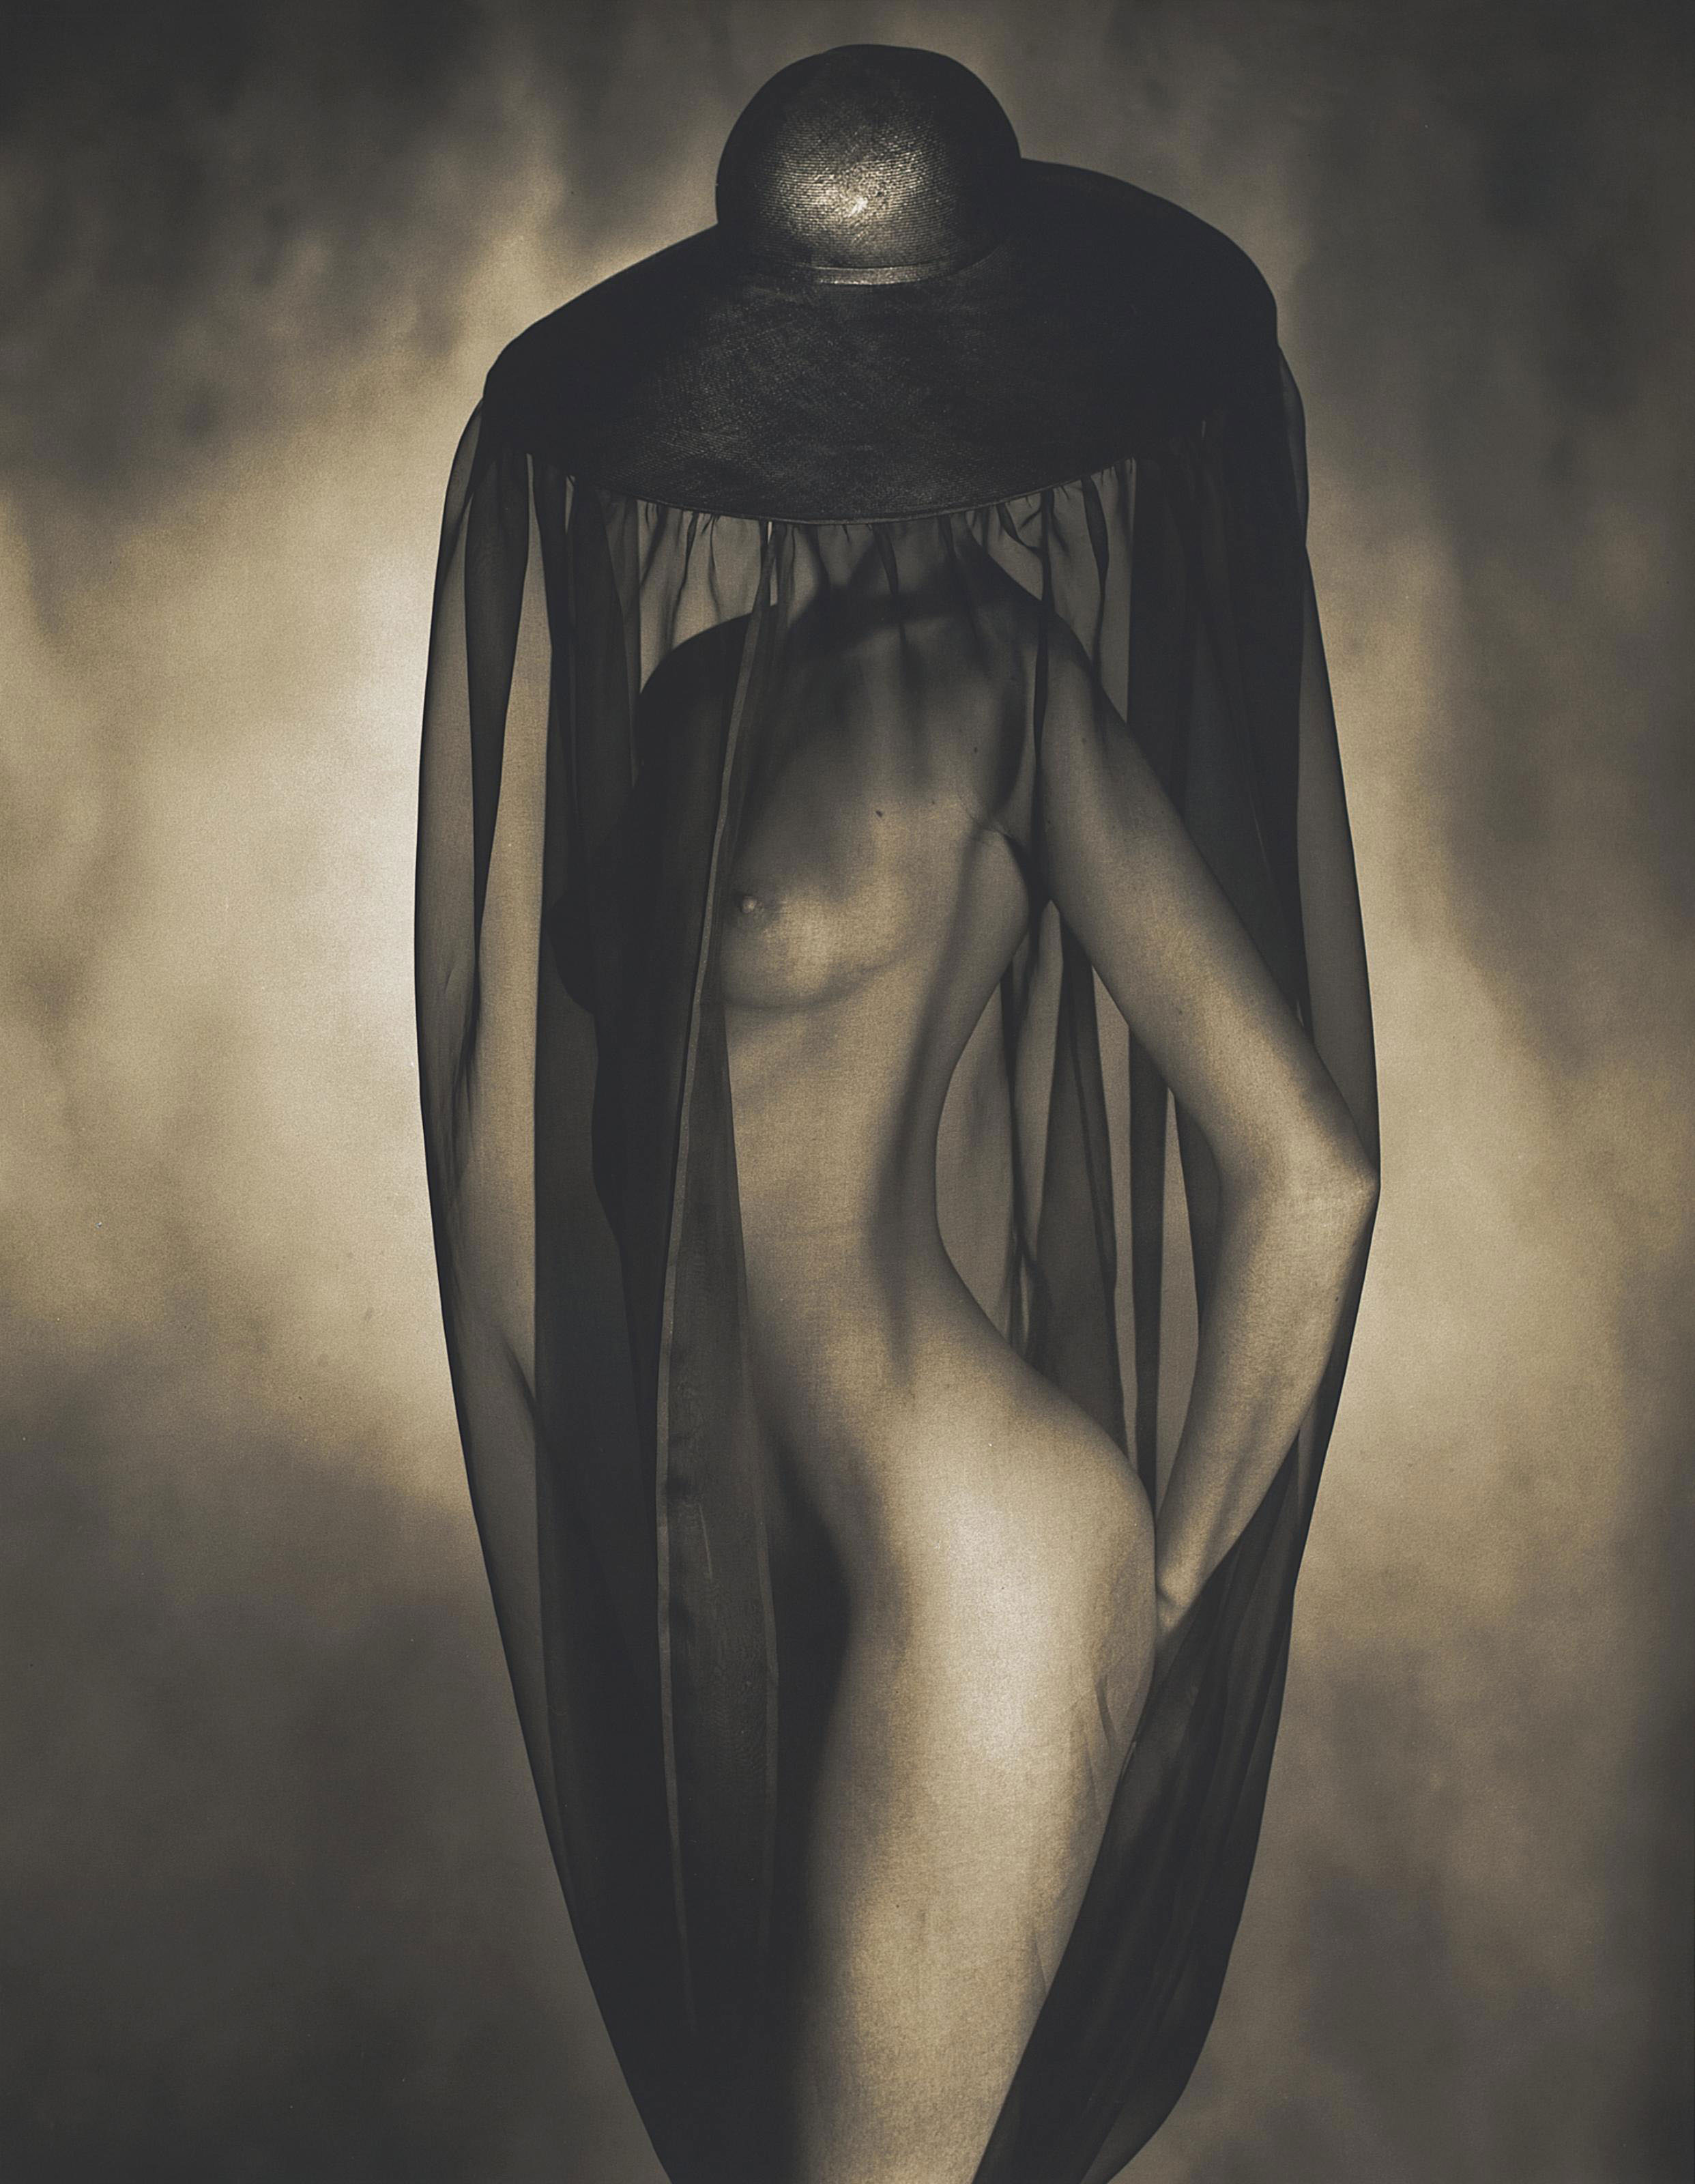 Nude with veiled hat, 1980